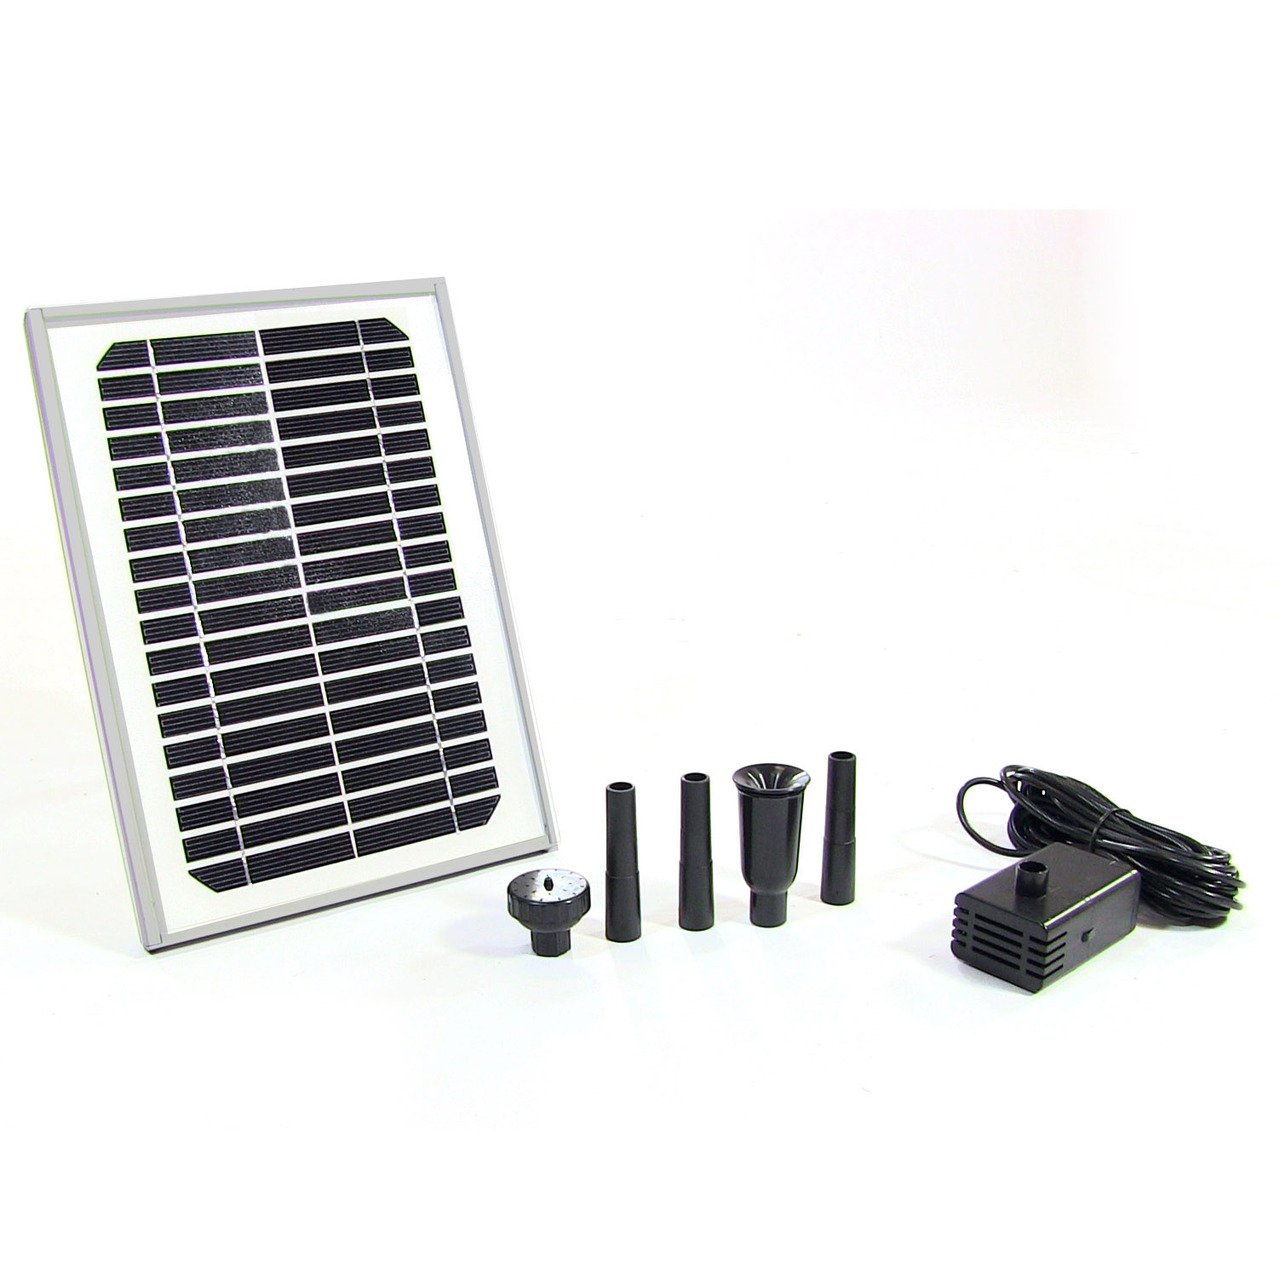 Sunnydaze 5W Solar Pump and Panel Kit Outdoor Fountain Pond, 56 Inch Lift